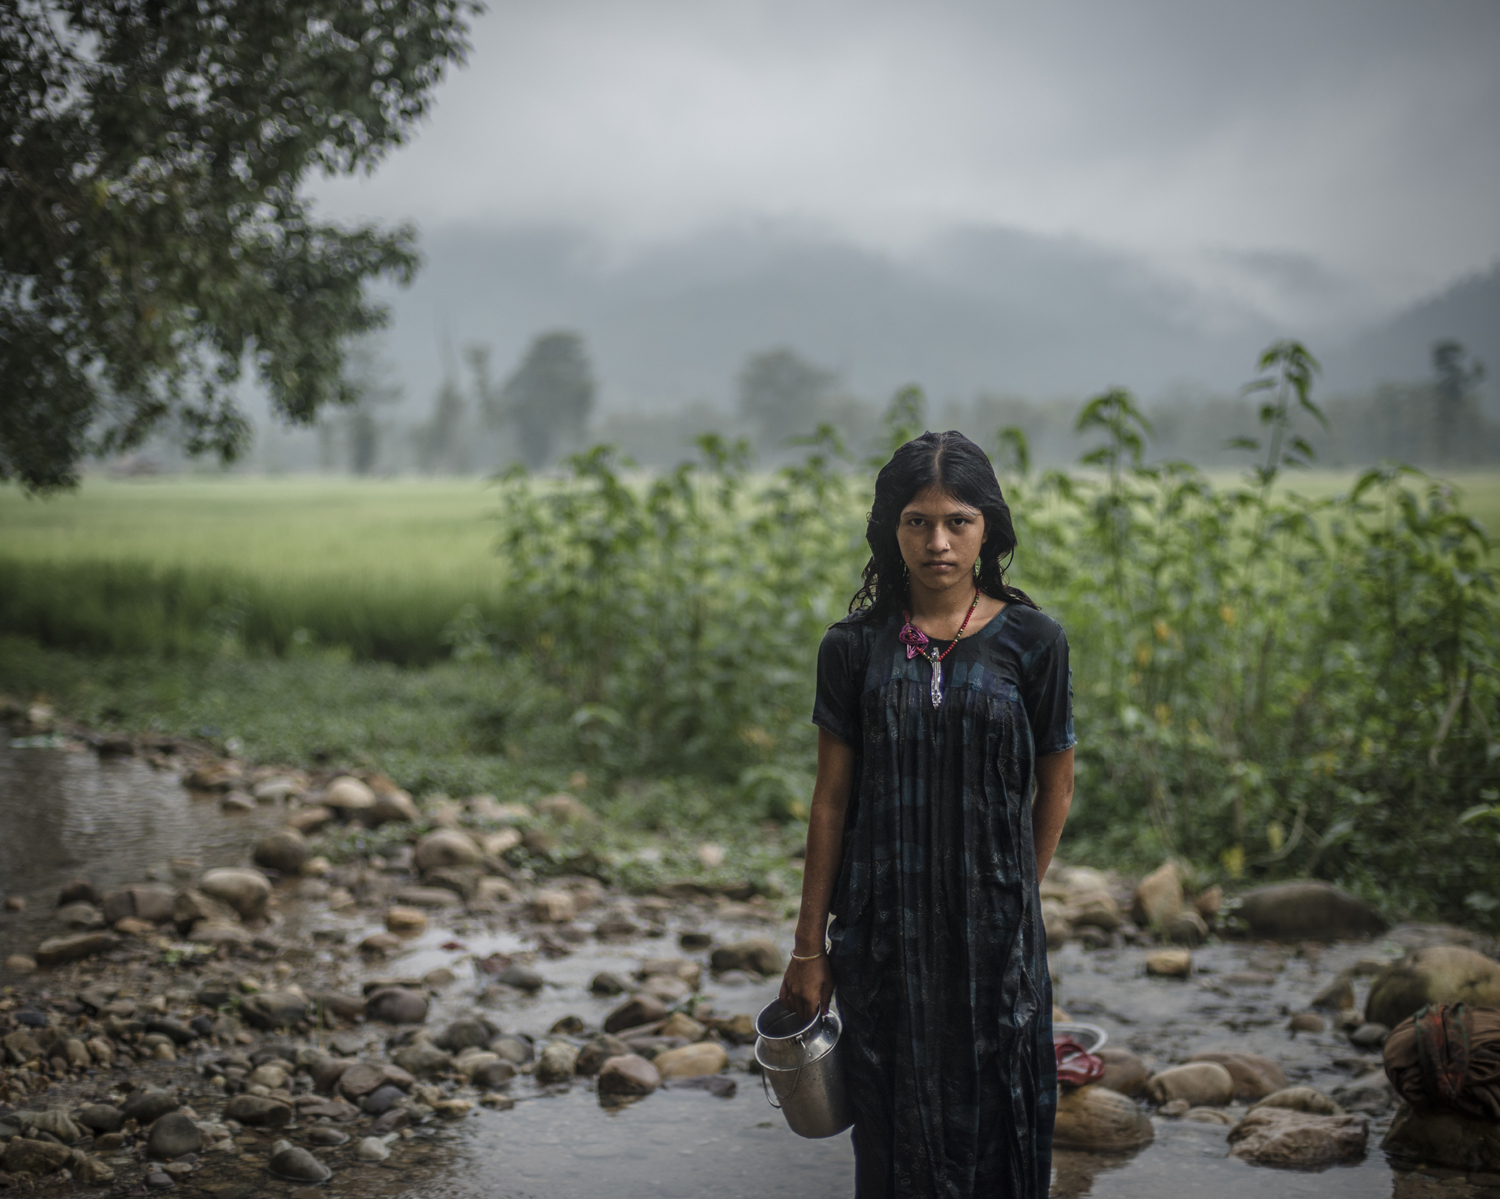 Mangu Bika, 14, after bathing. Surkhet District.